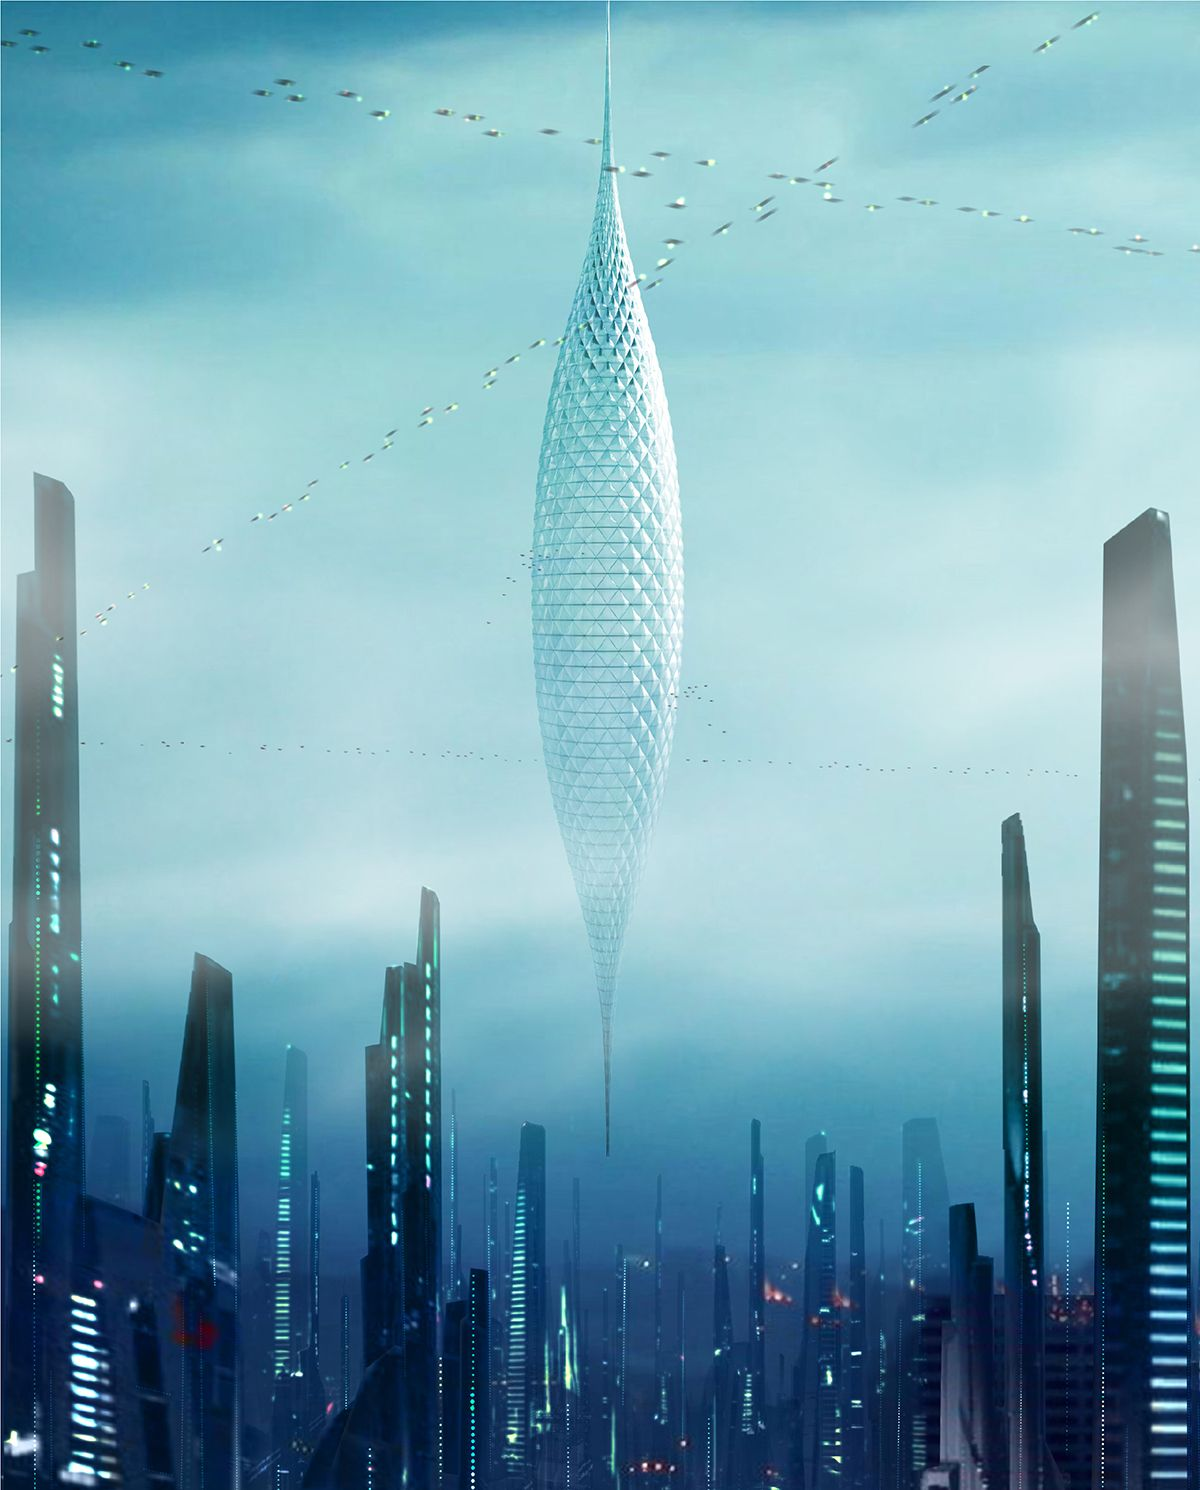 Amazing Architecture Magazine: The Planate Skyhanger: Skyscraper Hanging From Space